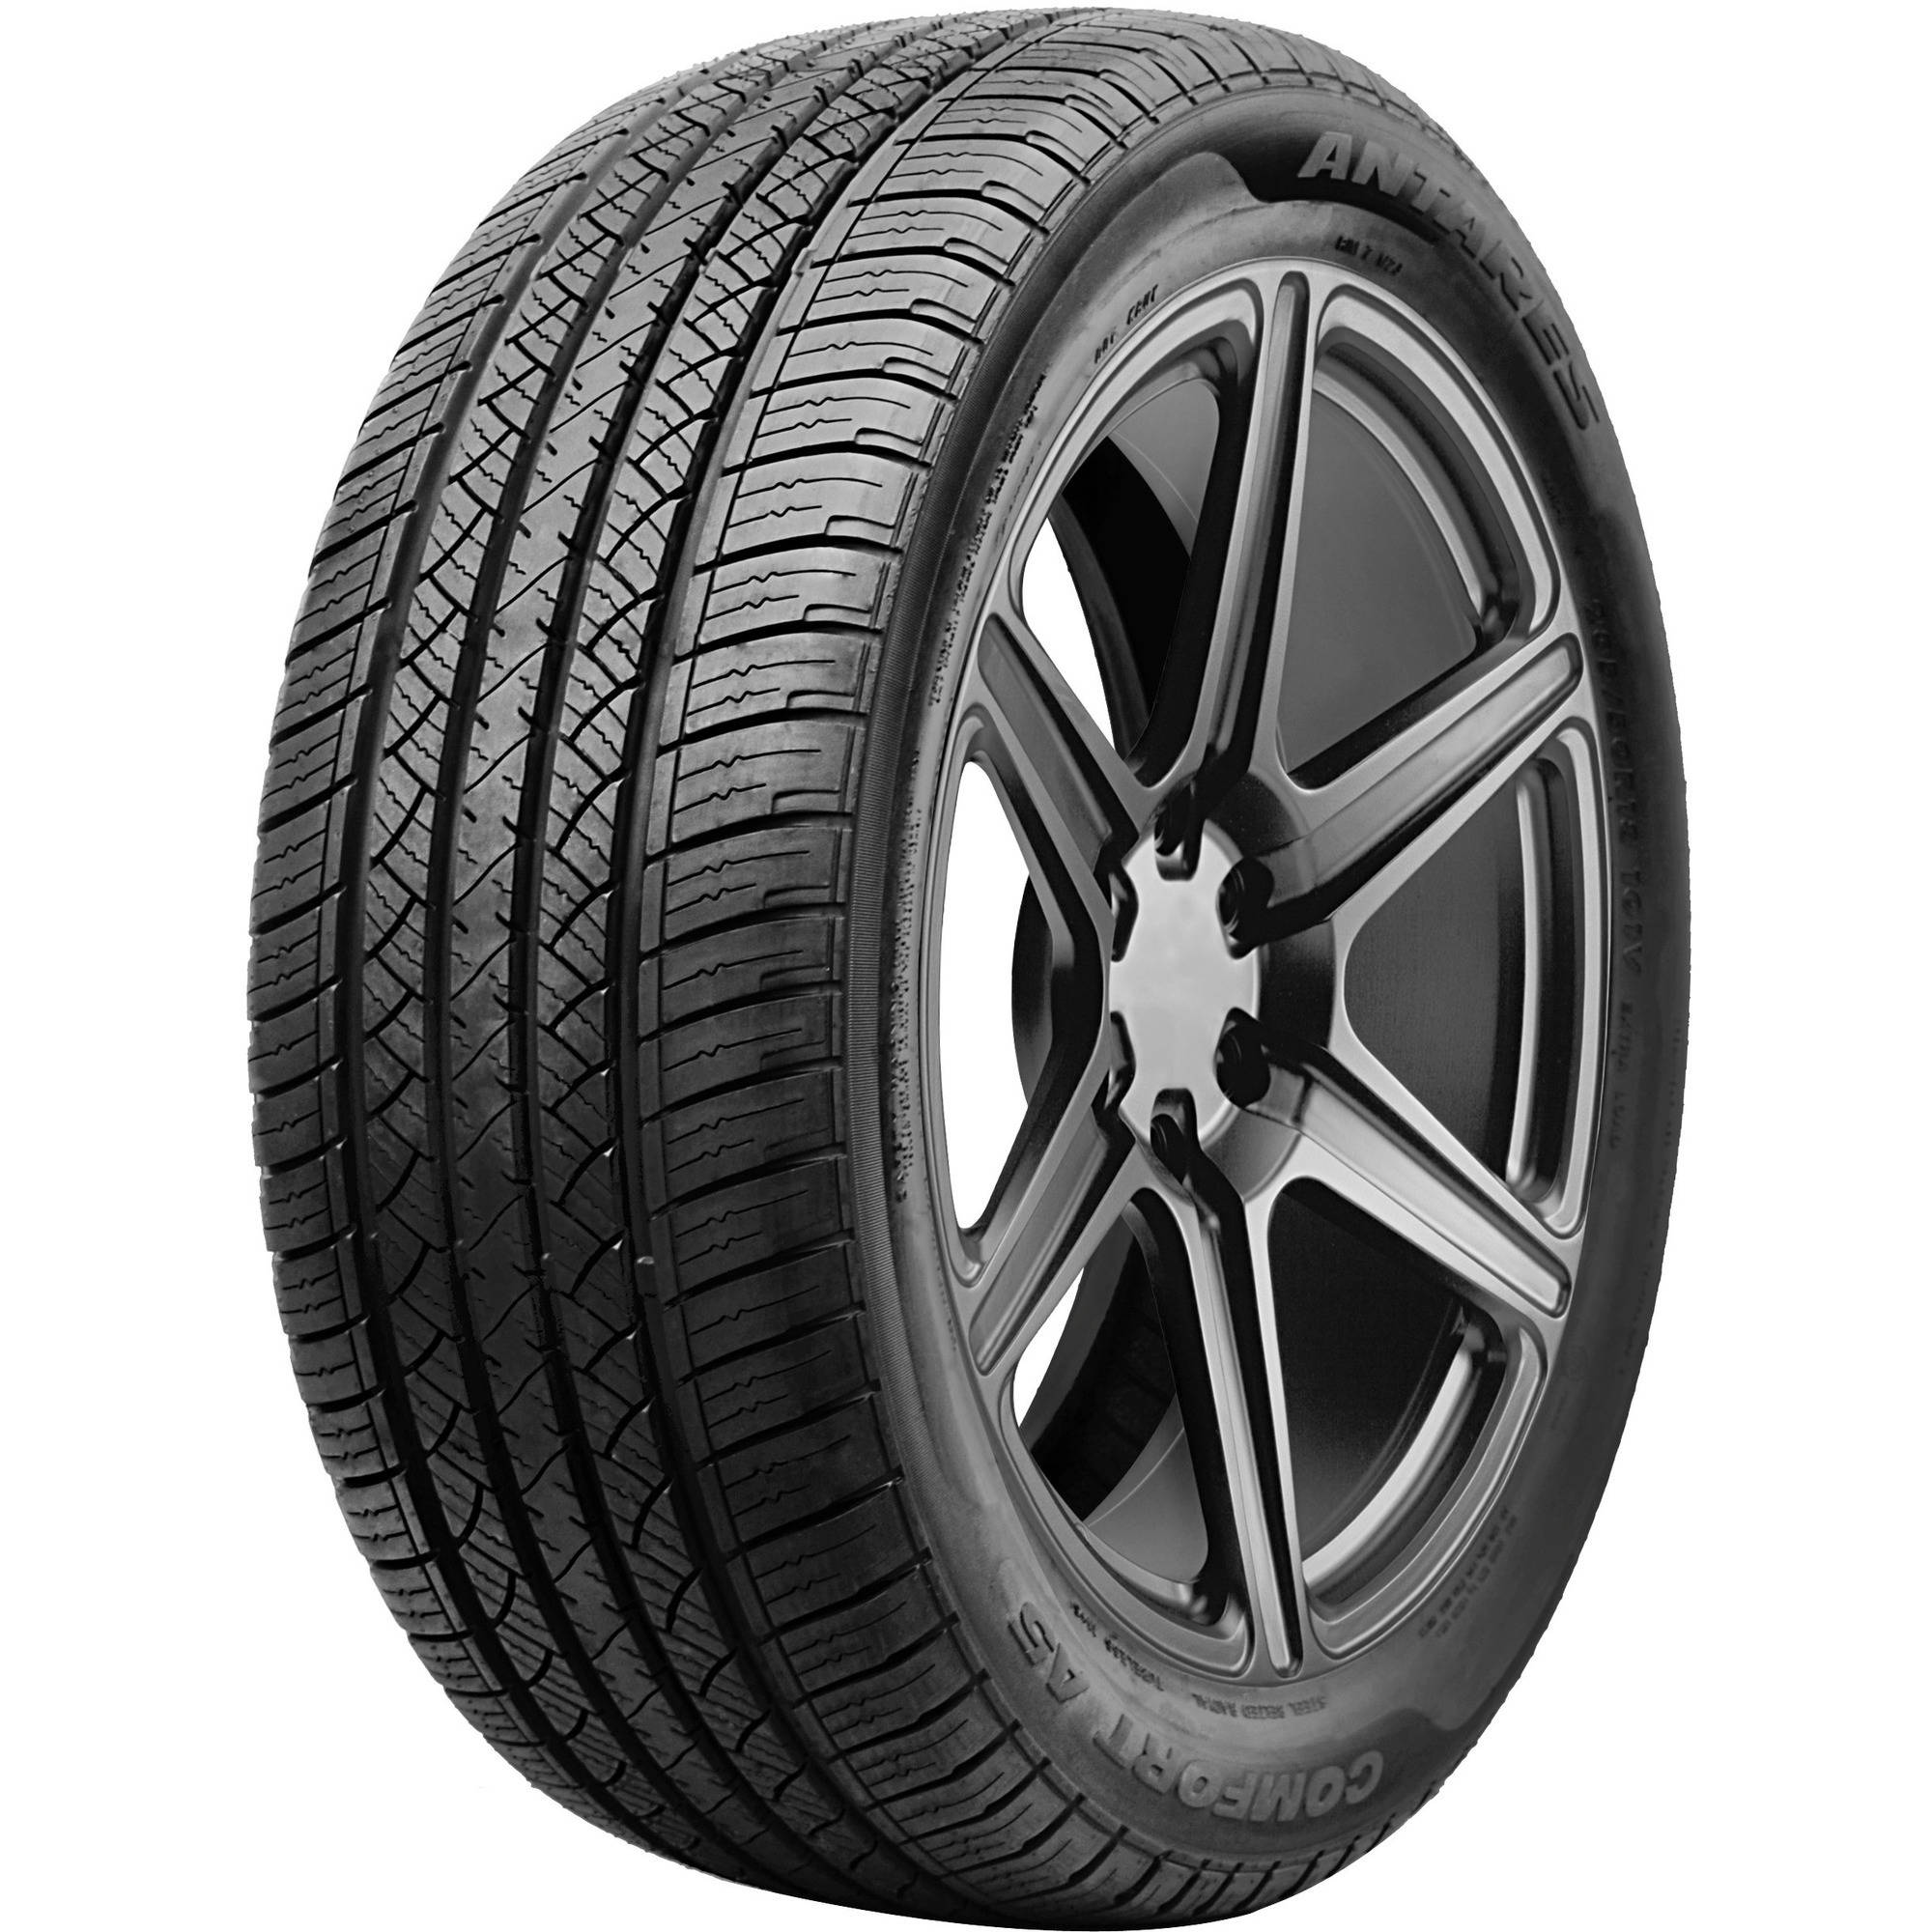 Antares Comfort A5 225/65R17 102S Tire